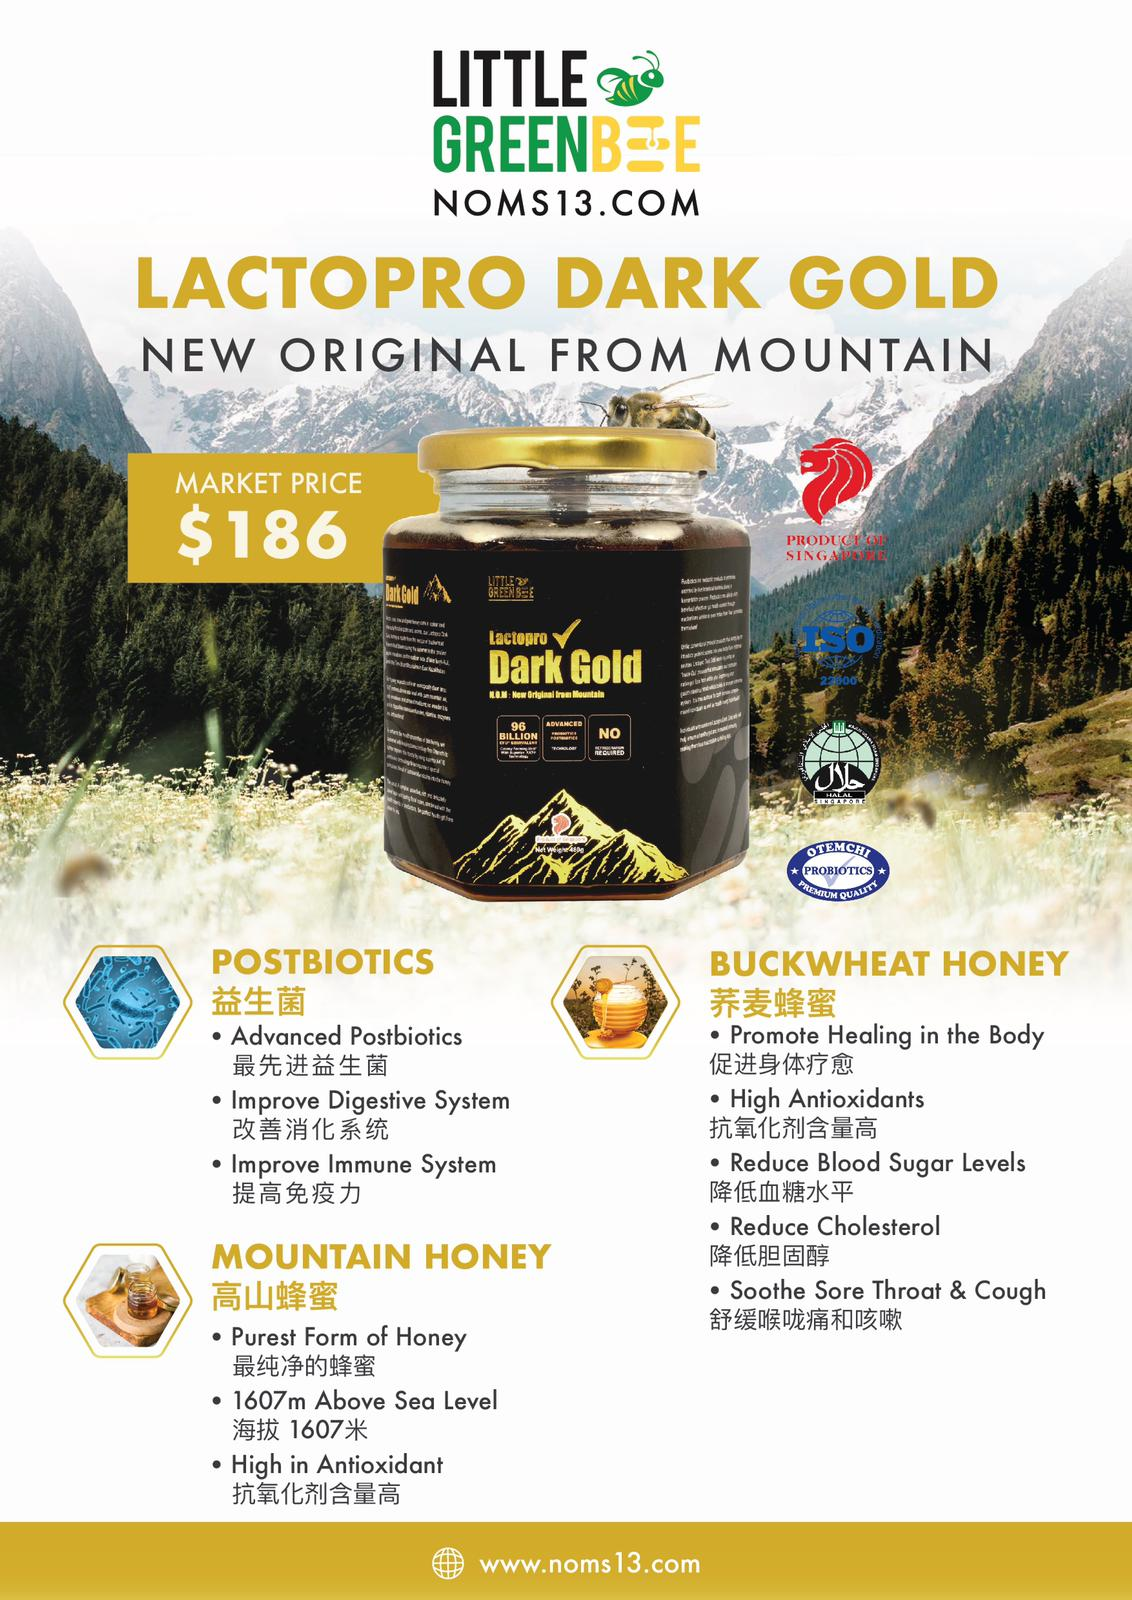 High-Grade Postbiotic Honey for you and your family!